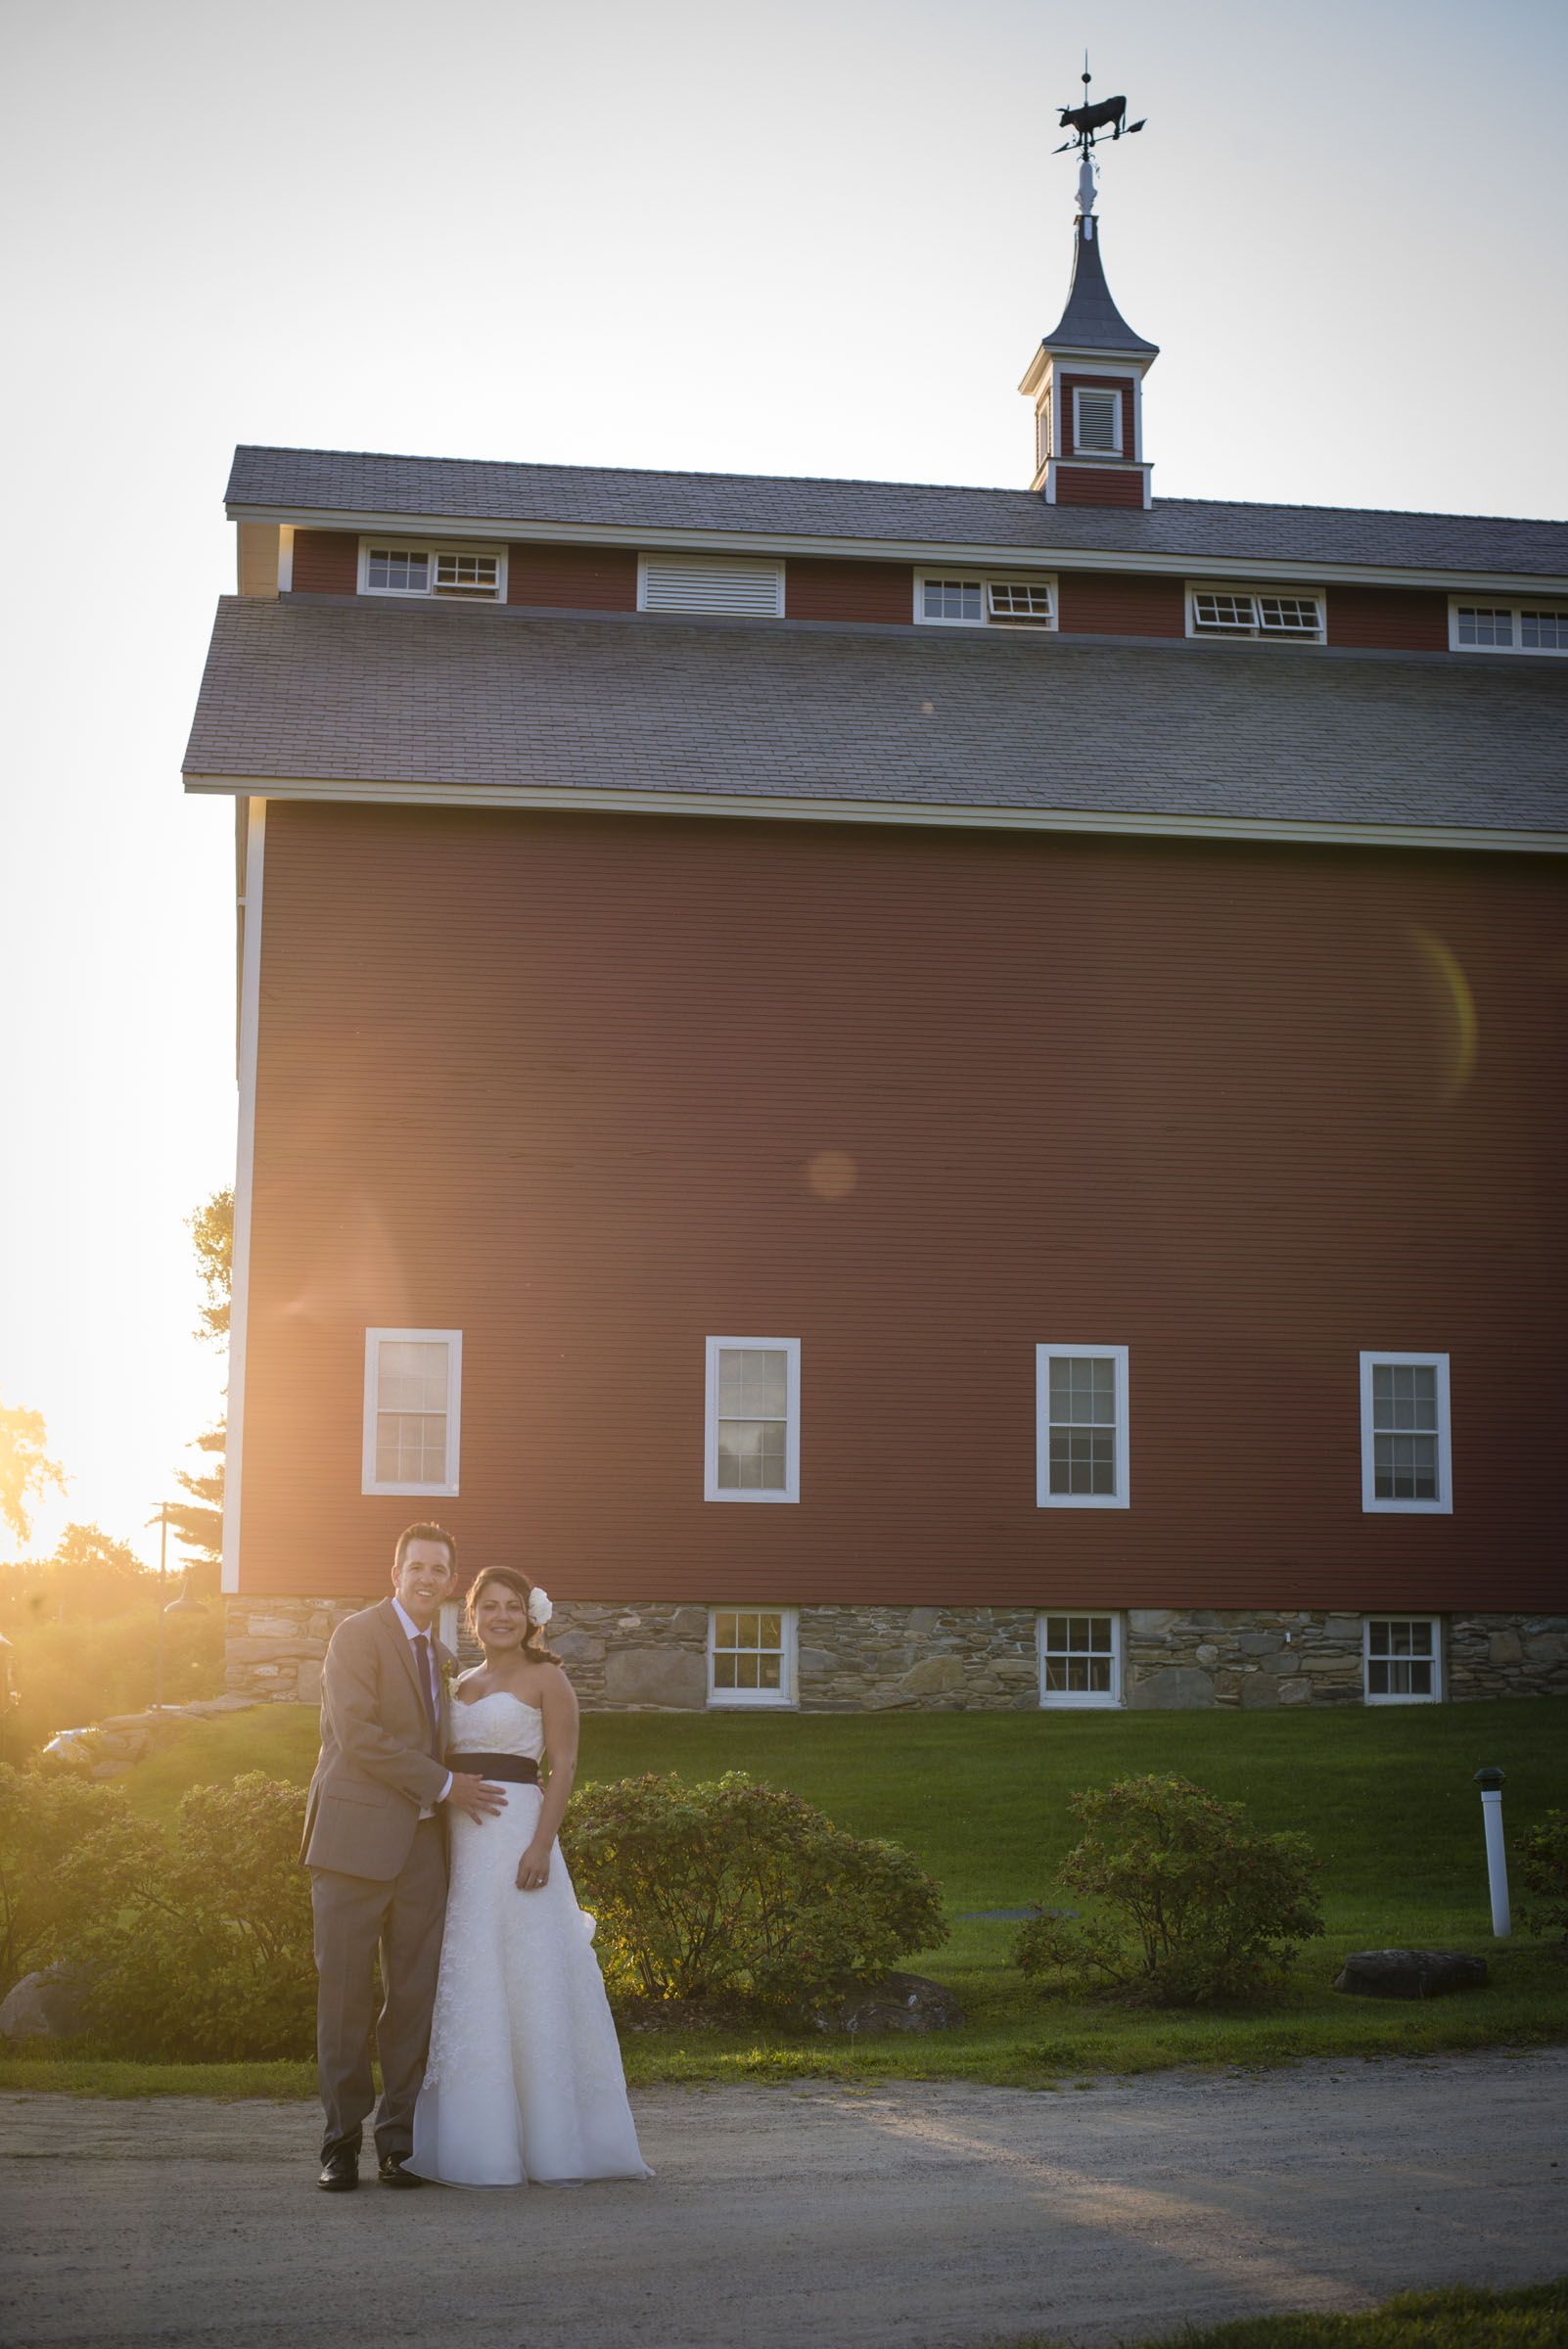 08232014-Chris&VanessaWedding-JuliaLuckettPhotography-419